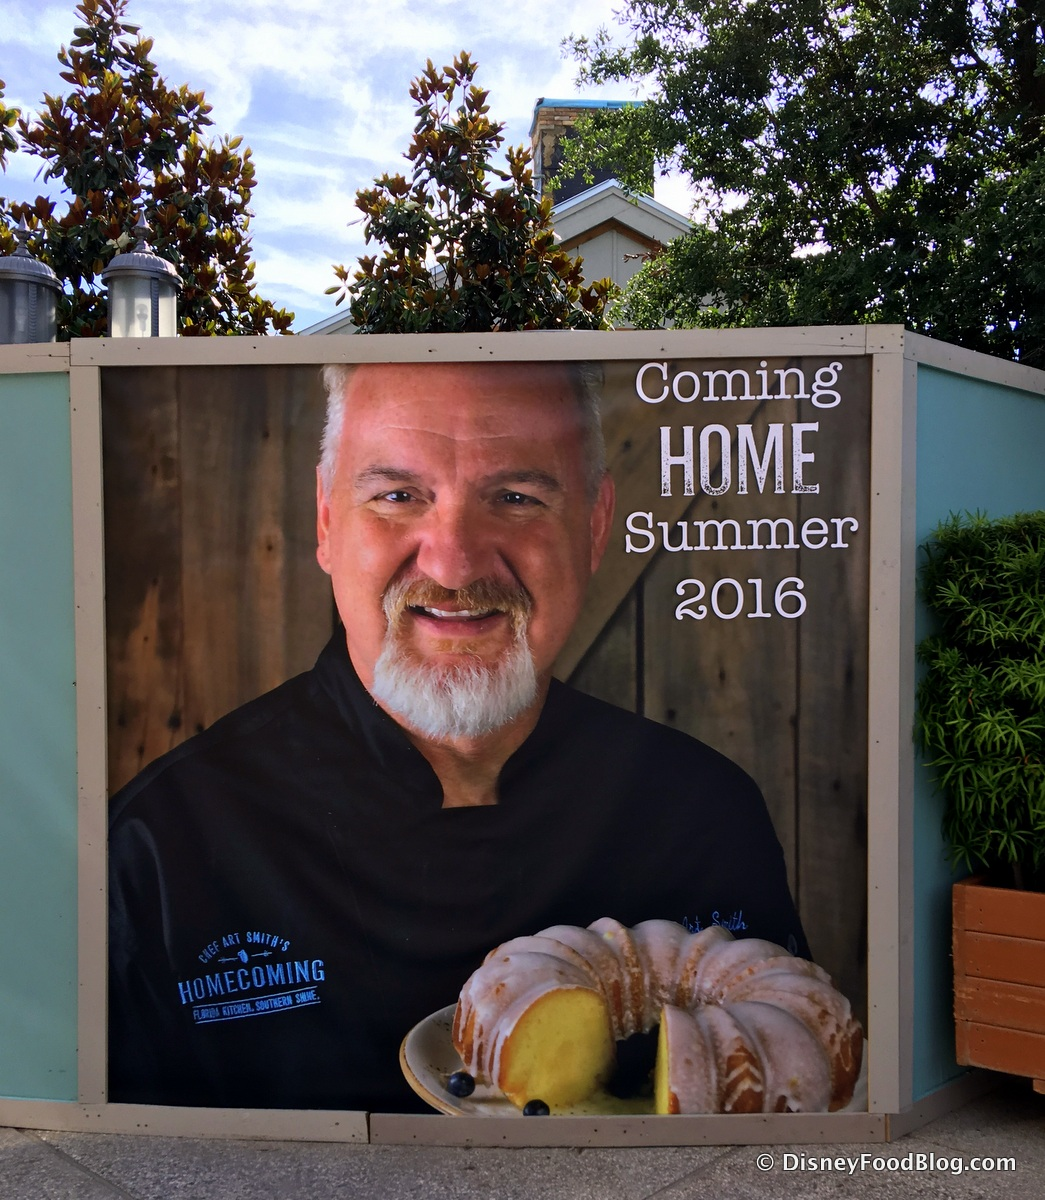 Menu Sneak Peek For Homecoming Florida Kitchen And Southern Shine By Chef Ar